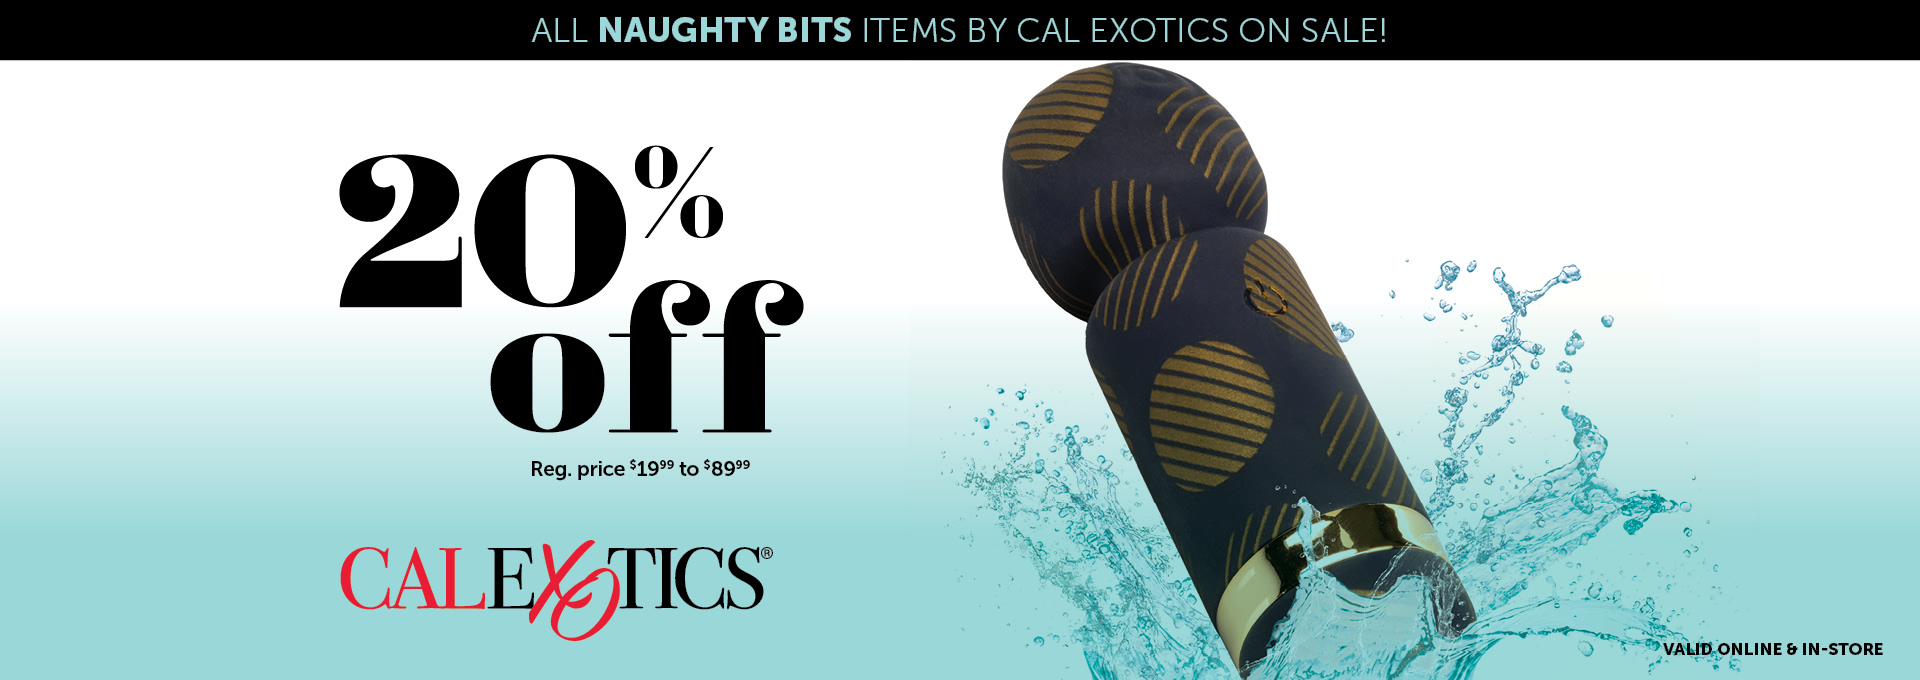 20% OFF Naughty Bits by CalExotics